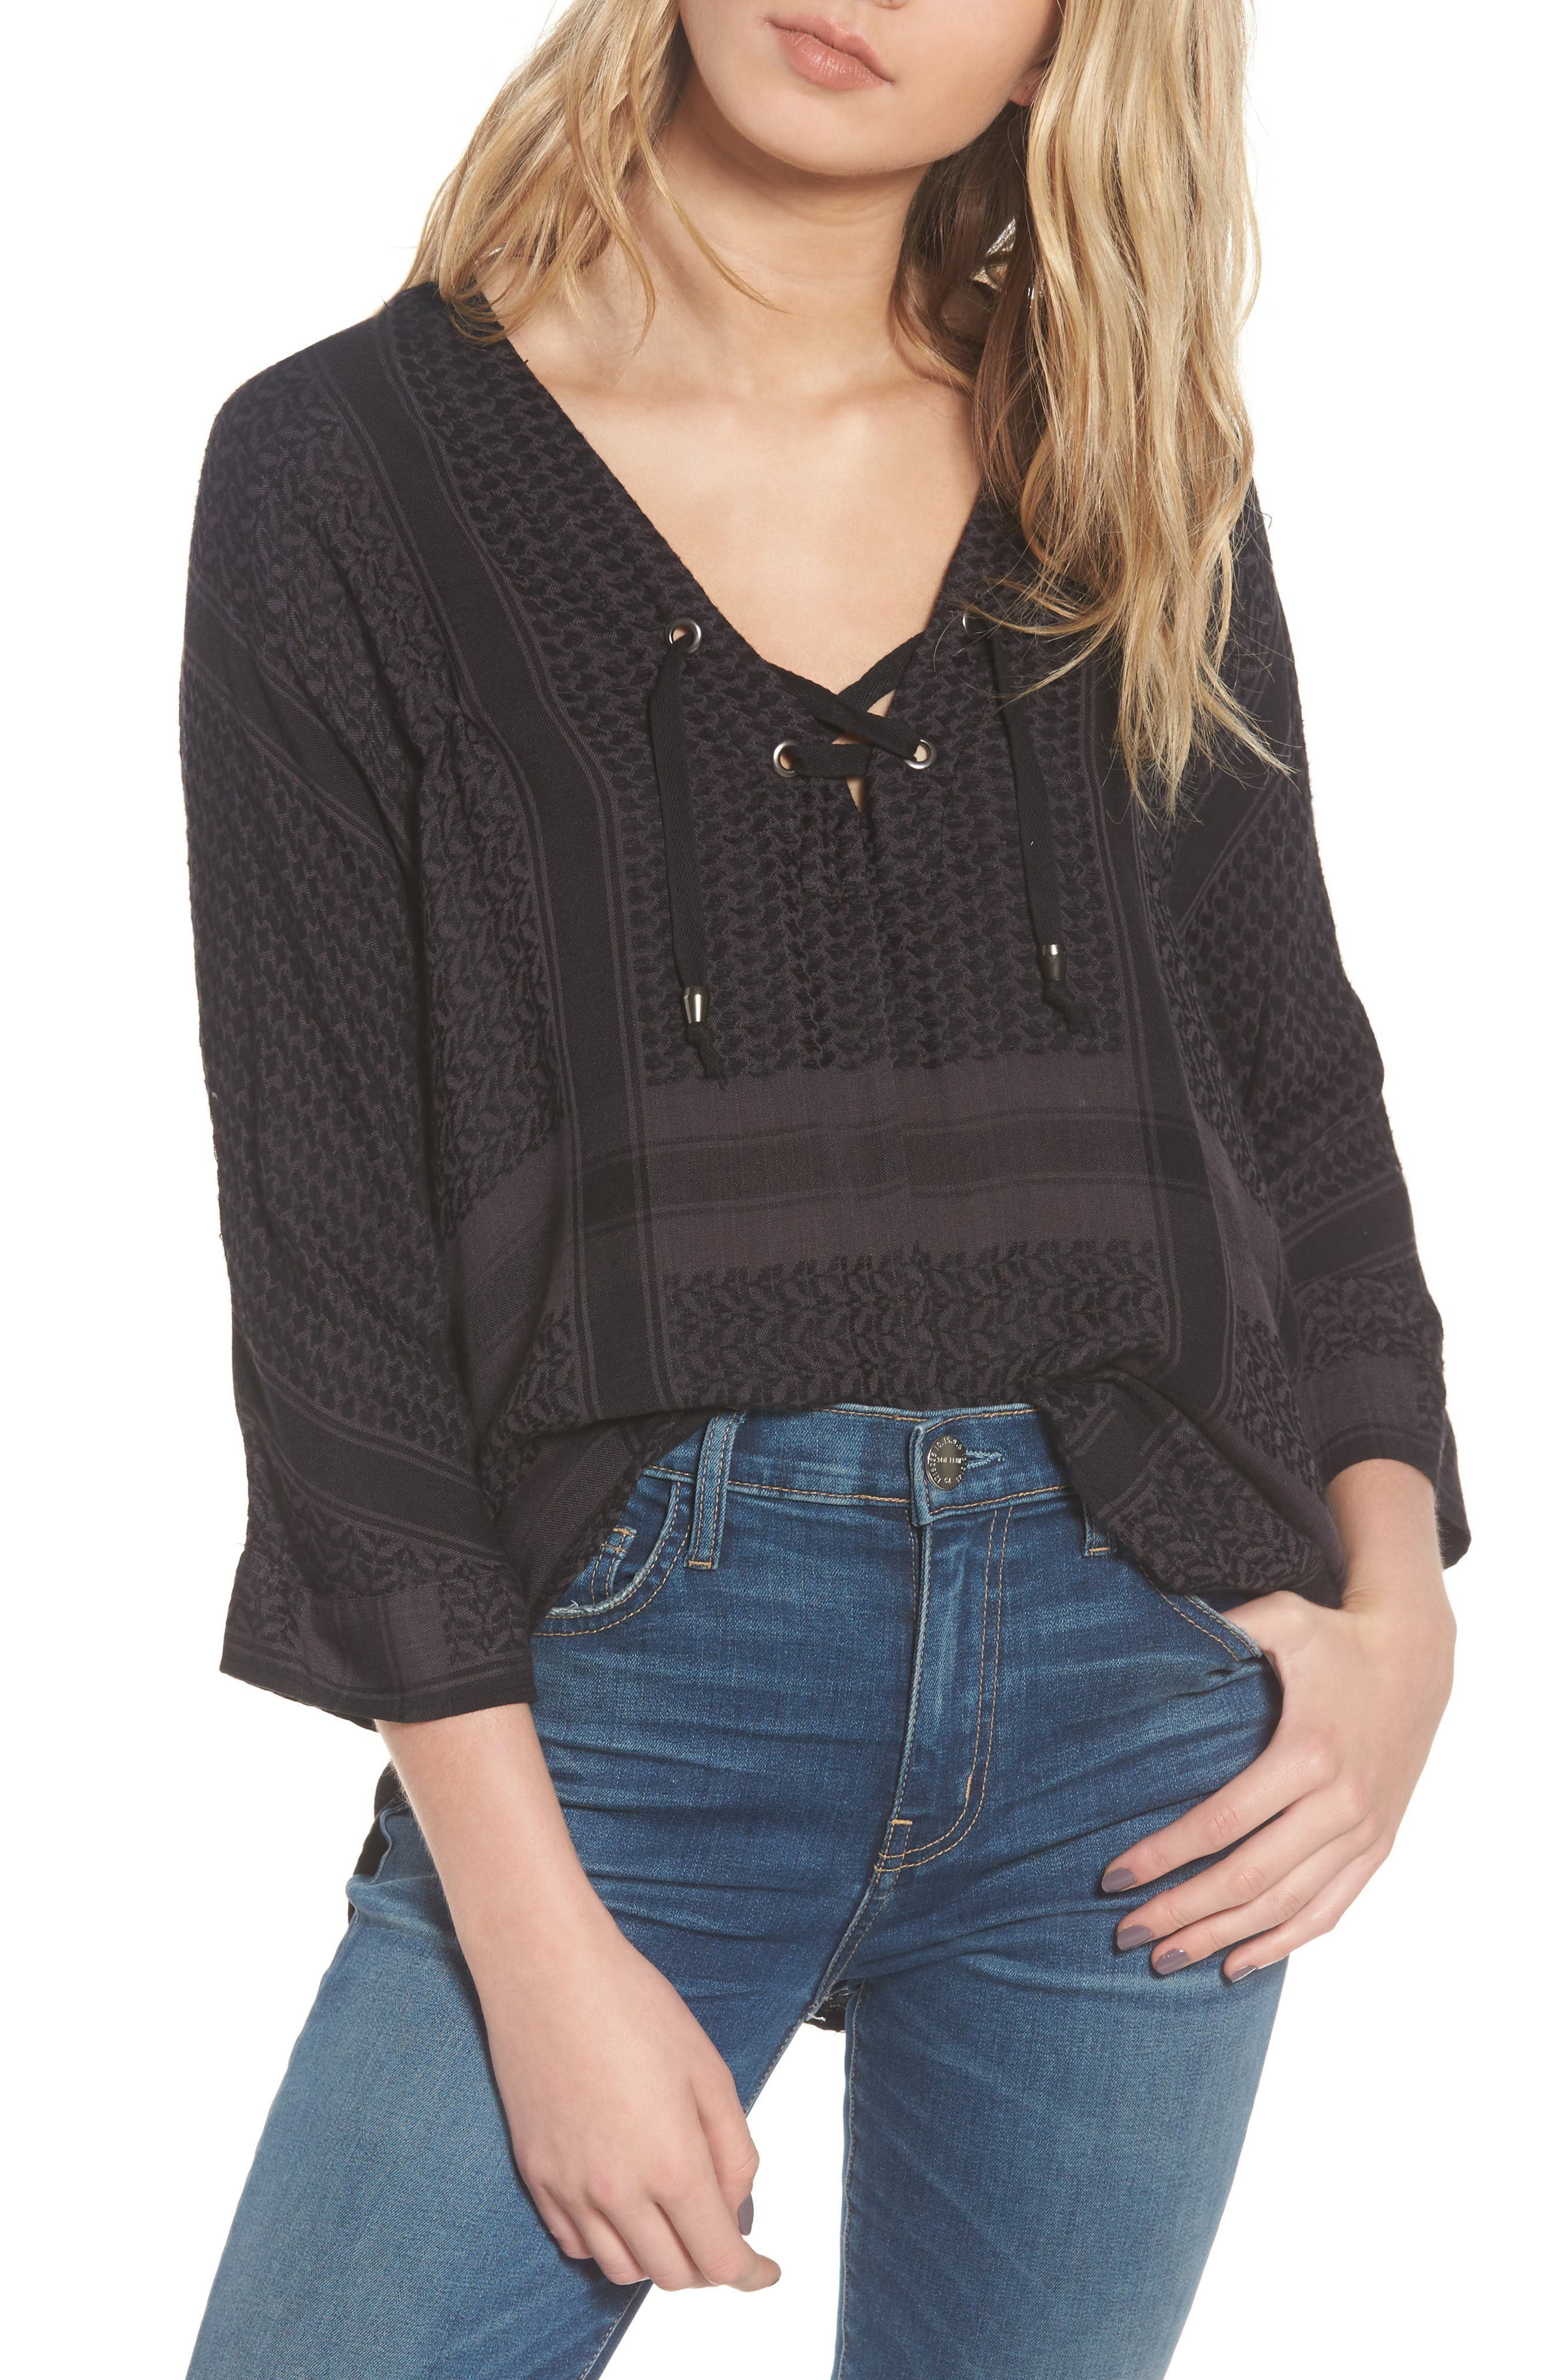 Lily Pullover Blouse,                         Main,                         color, ONYX JACQUARD